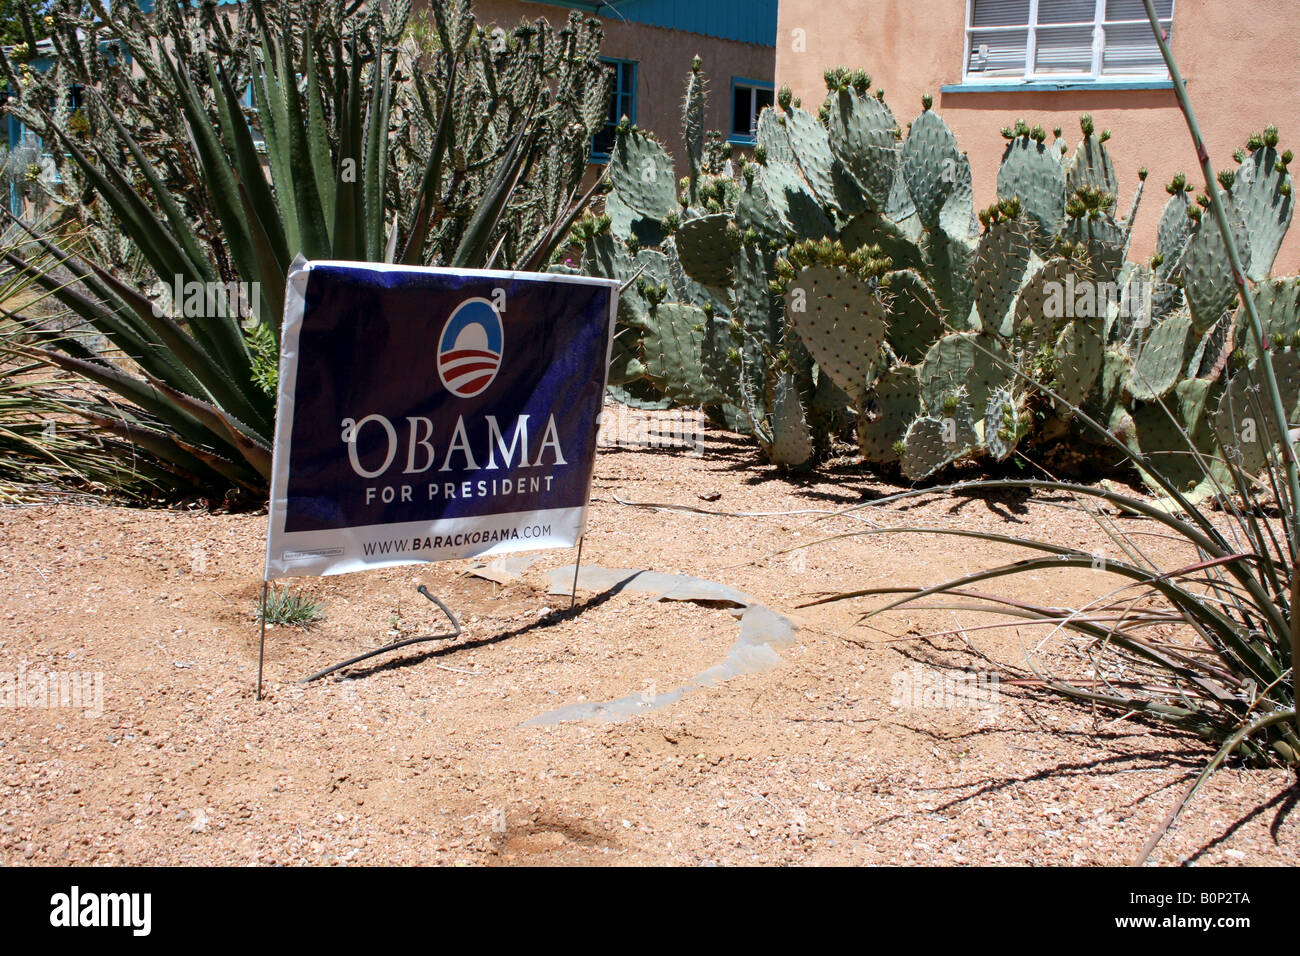 Barrack Obama for president sign outside of house in southwestern united states neighborhood front yard - Stock Image